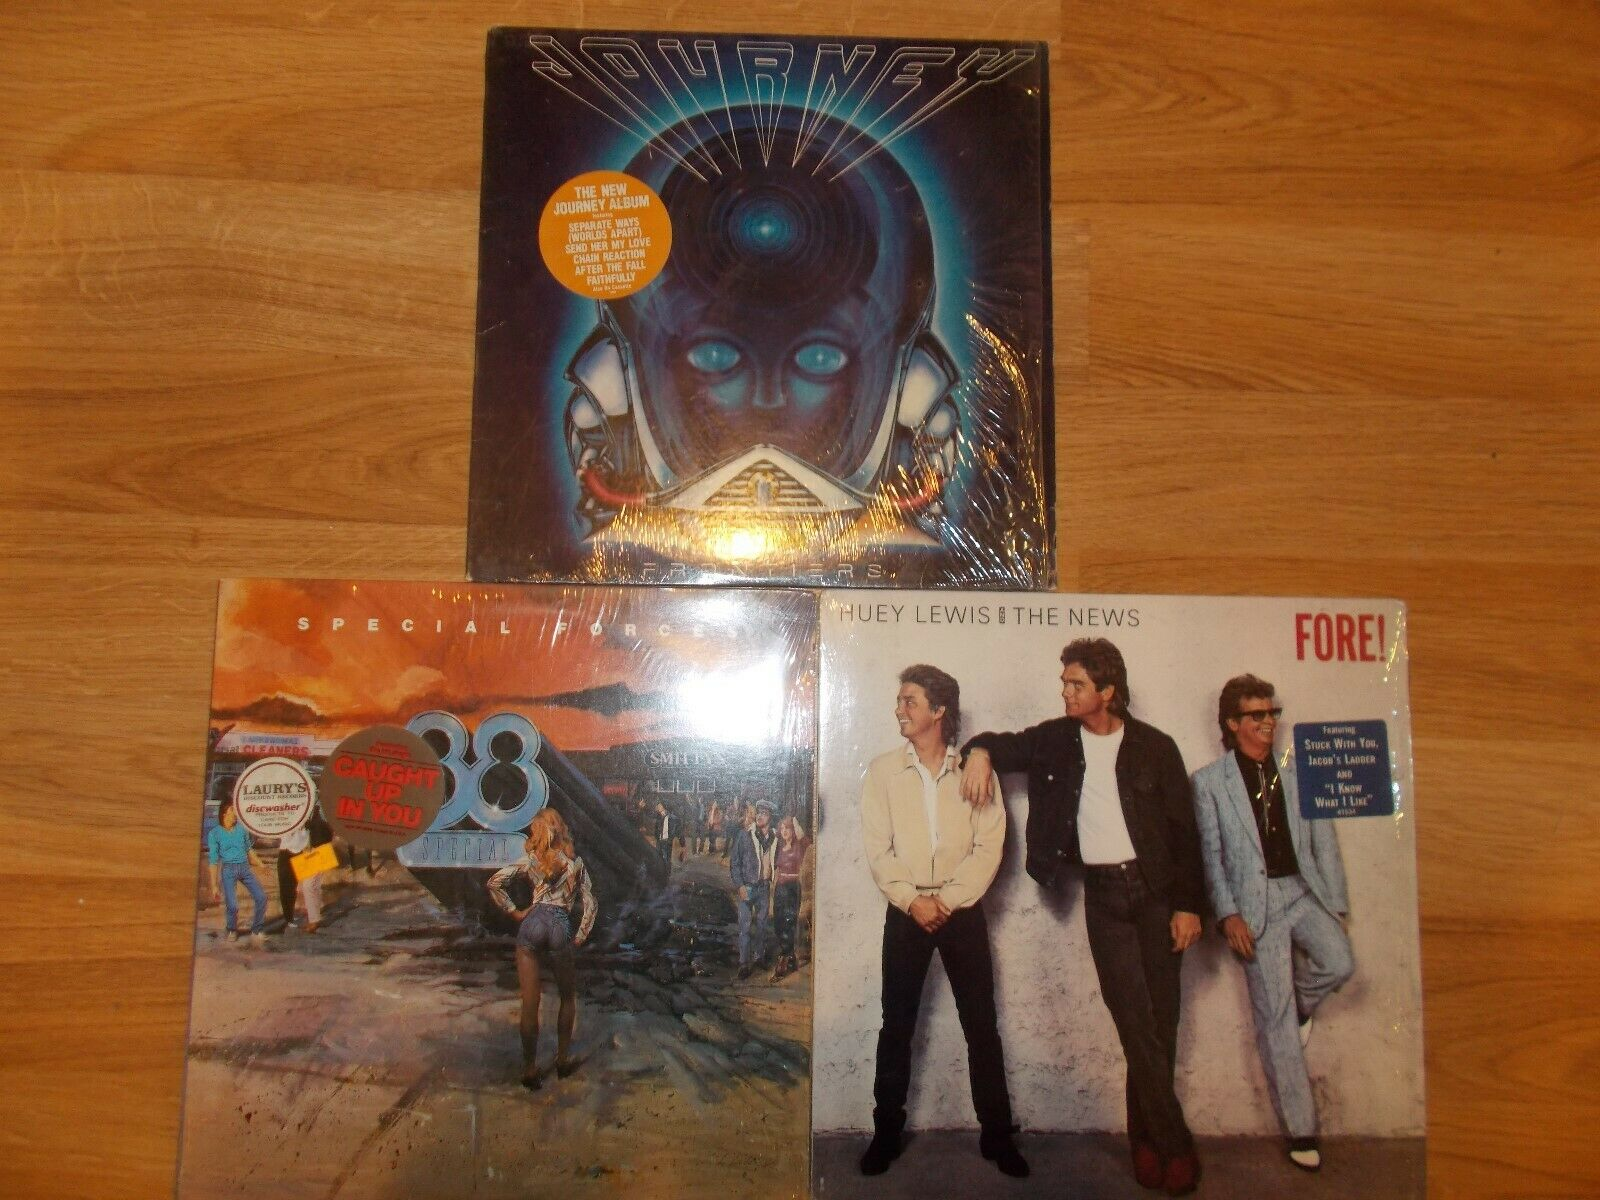 Journey Frontiers, 38 Special Special forces, and Huey Lewis Fore  LP Vinyl